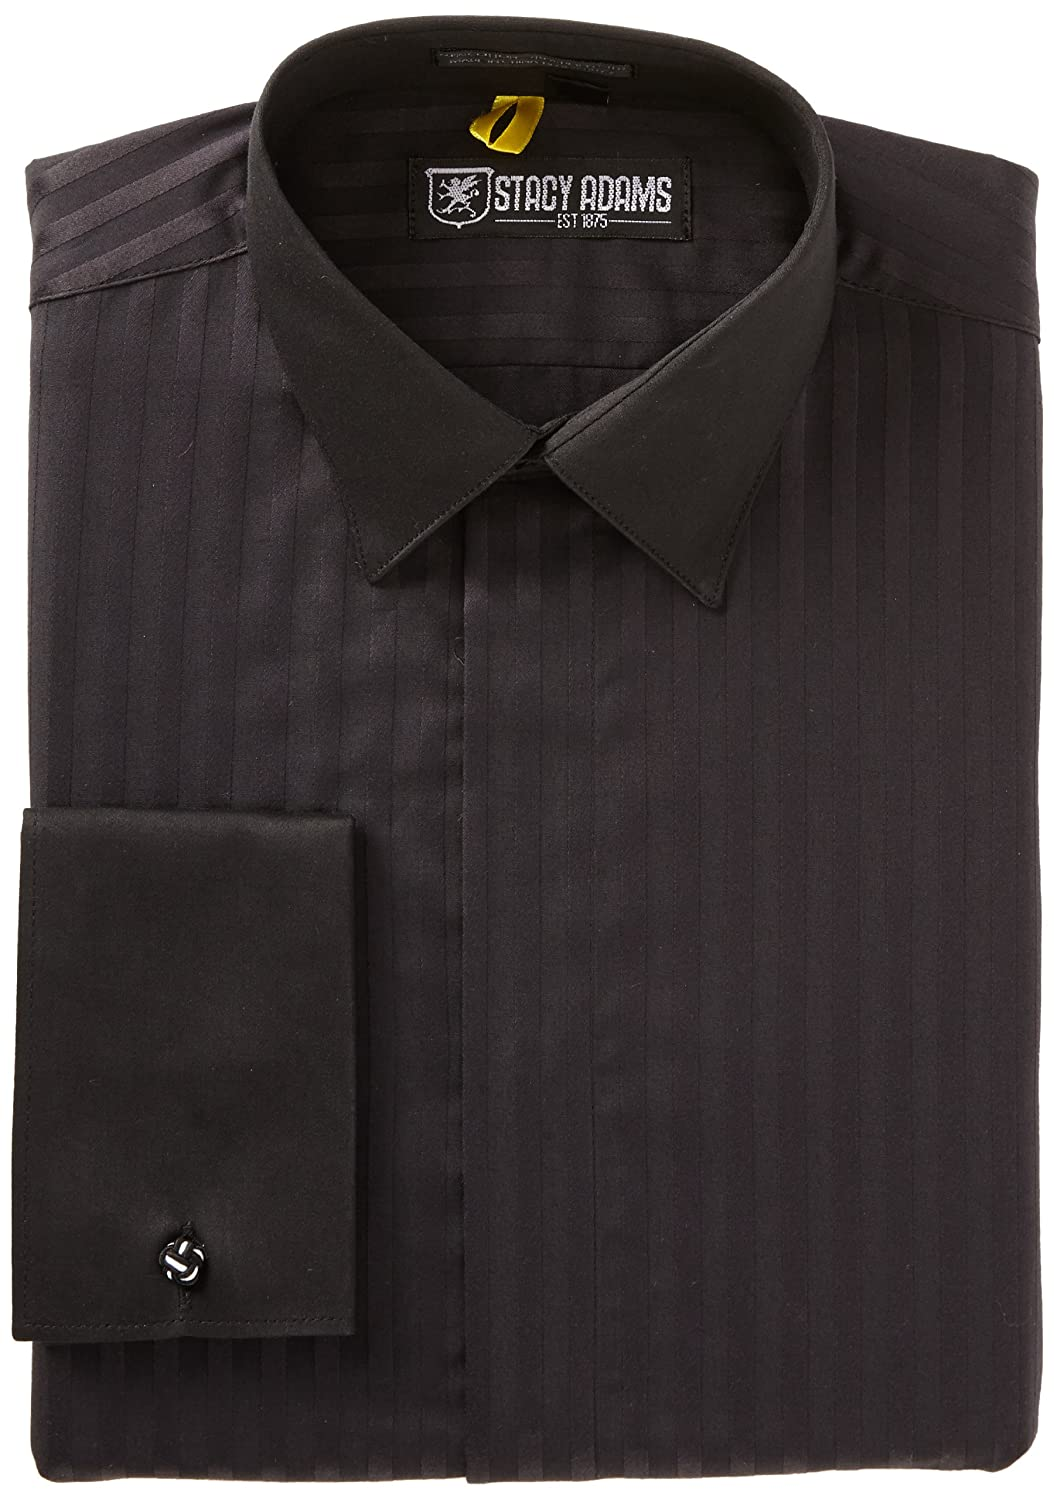 Stacy Adams Mens Cape Town Dress Shirt Ebony 165 3233 At